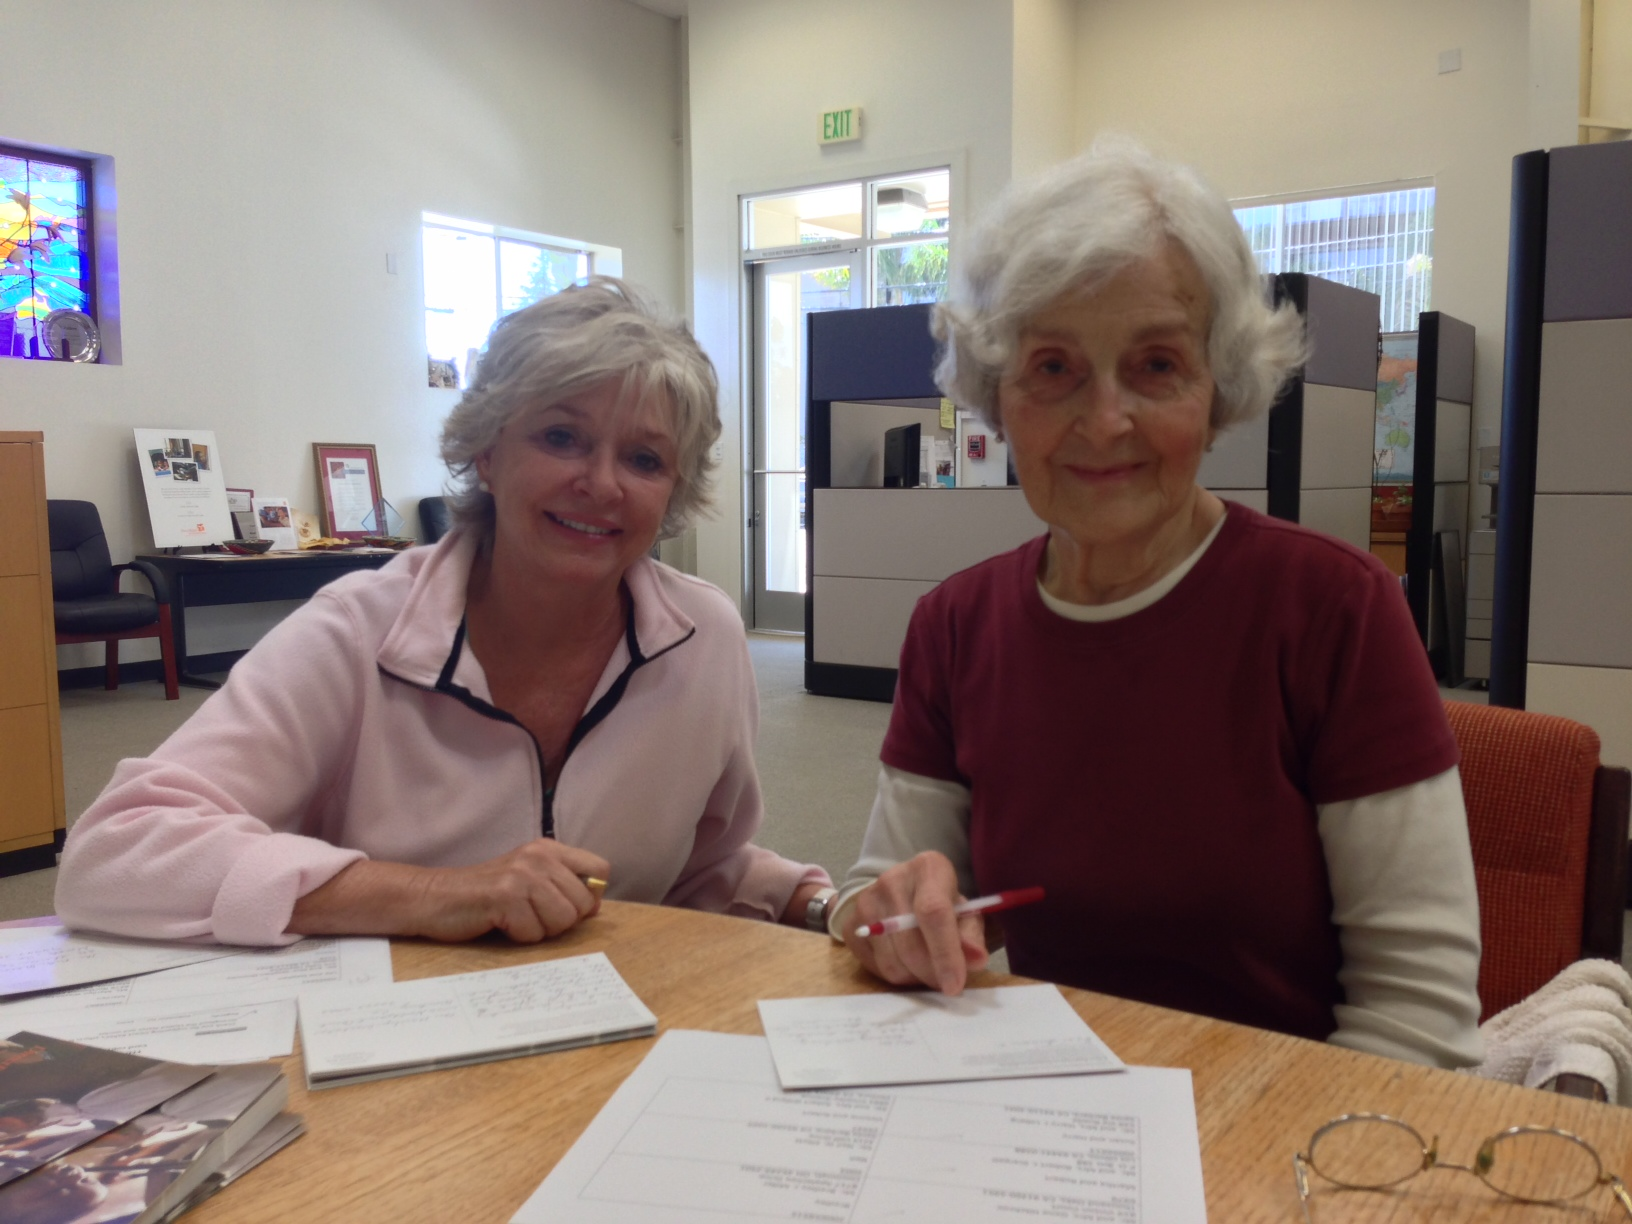 Ann (left) and Dolores (right) smile during a Tuesday morning letter-writing session.